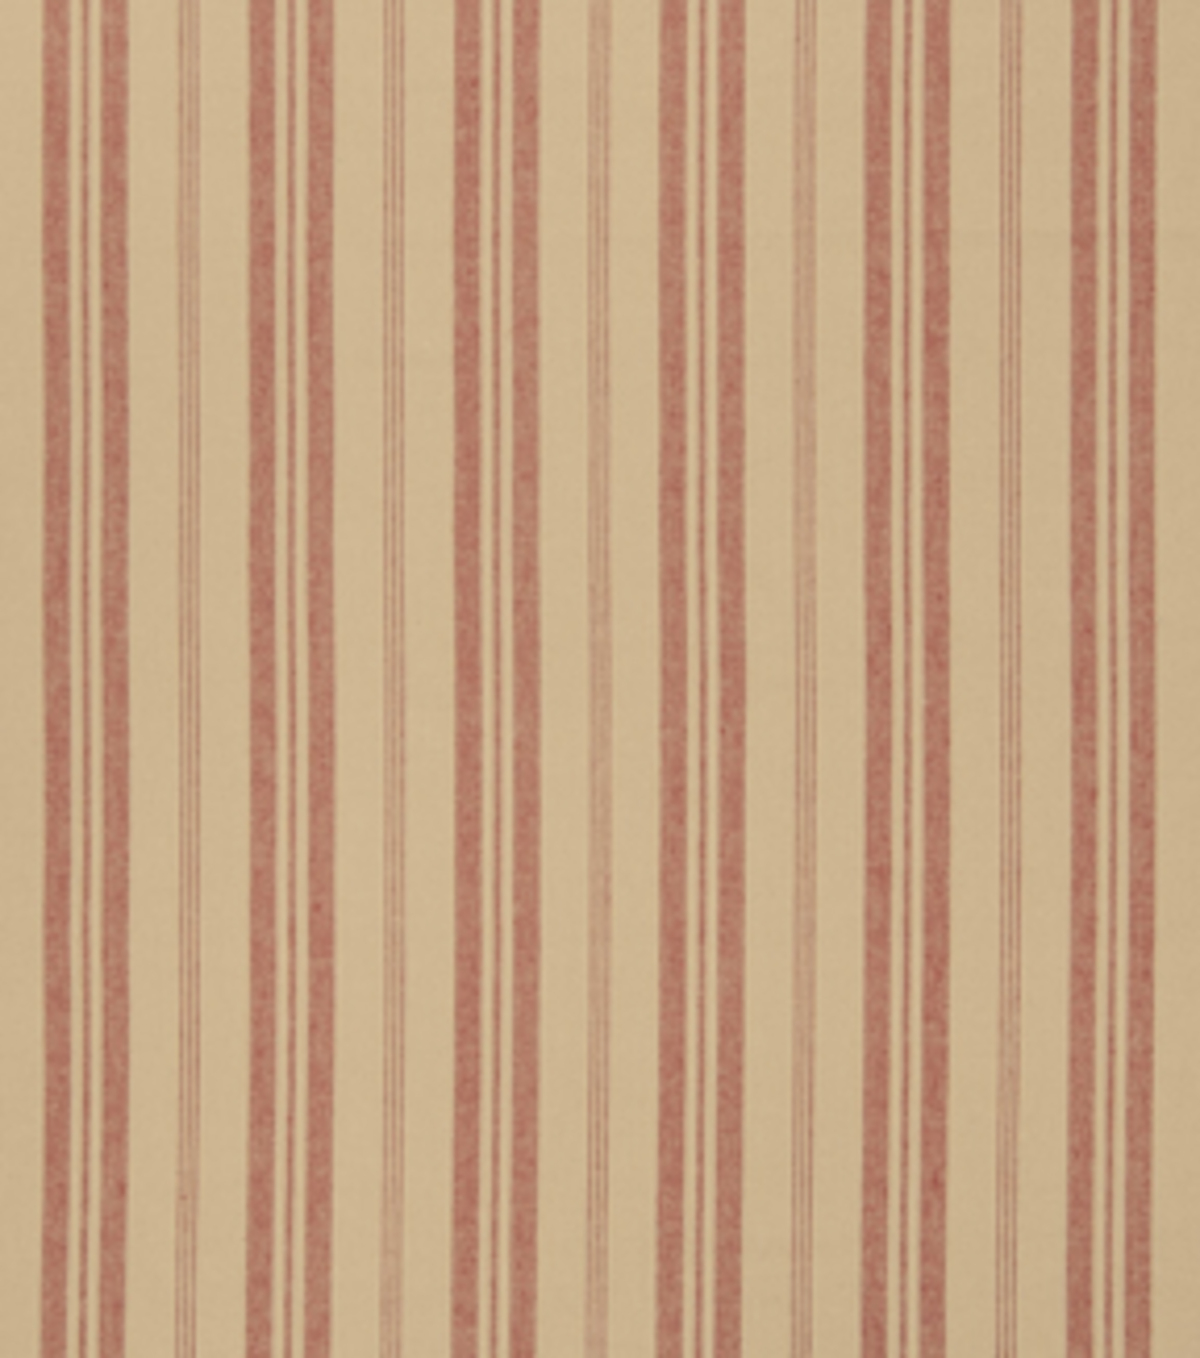 Home Decor 8\u0022x8\u0022 Fabric Swatch-French General Bountiful Rural Red